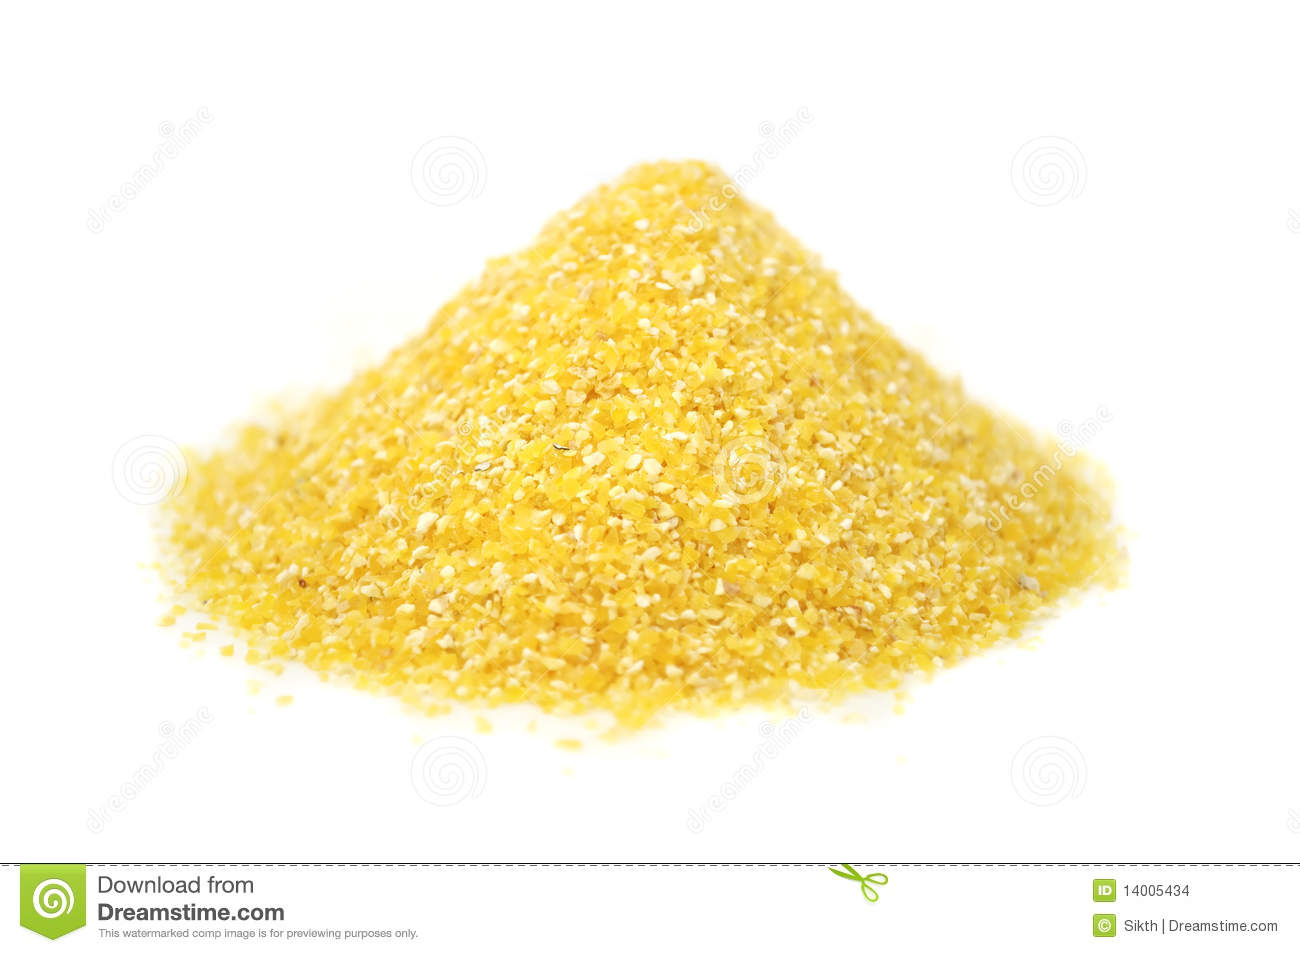 pile of corn grits isolated on a white background.